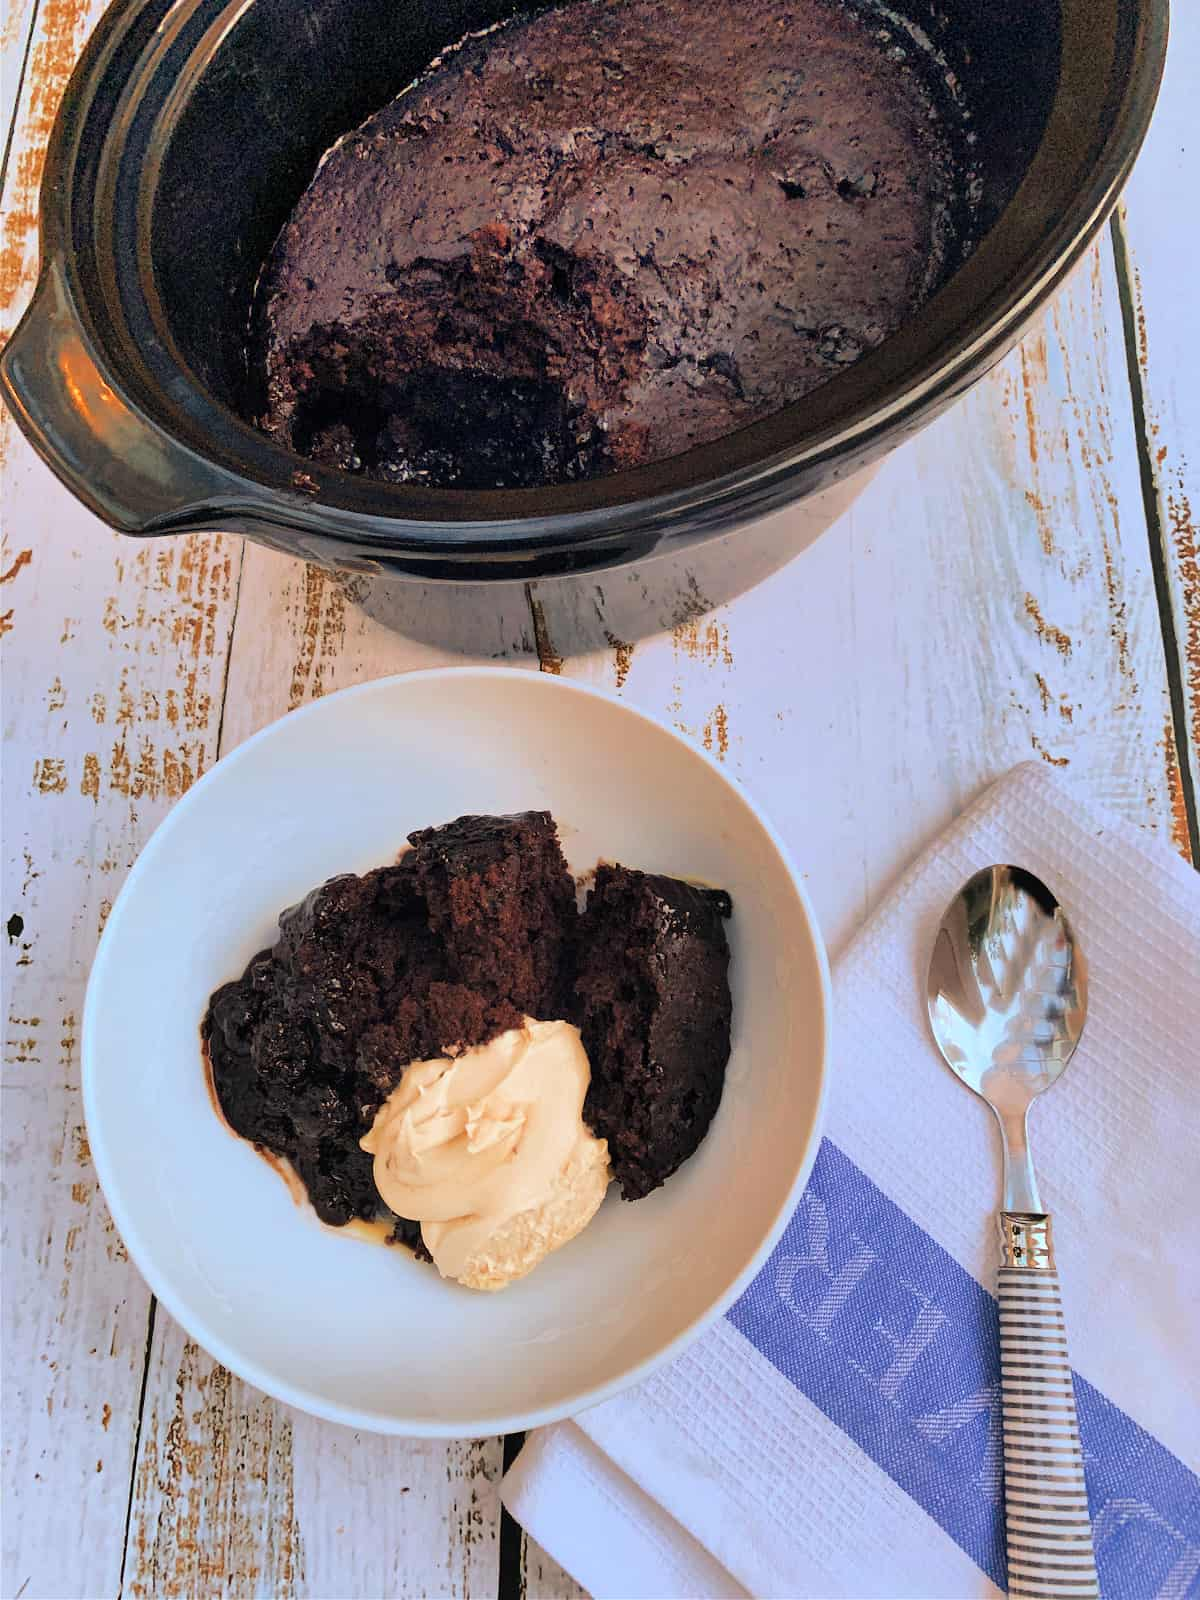 Slow cooker in background, bowl of chocolate lava cake with cream in front, with a spoon to the side.